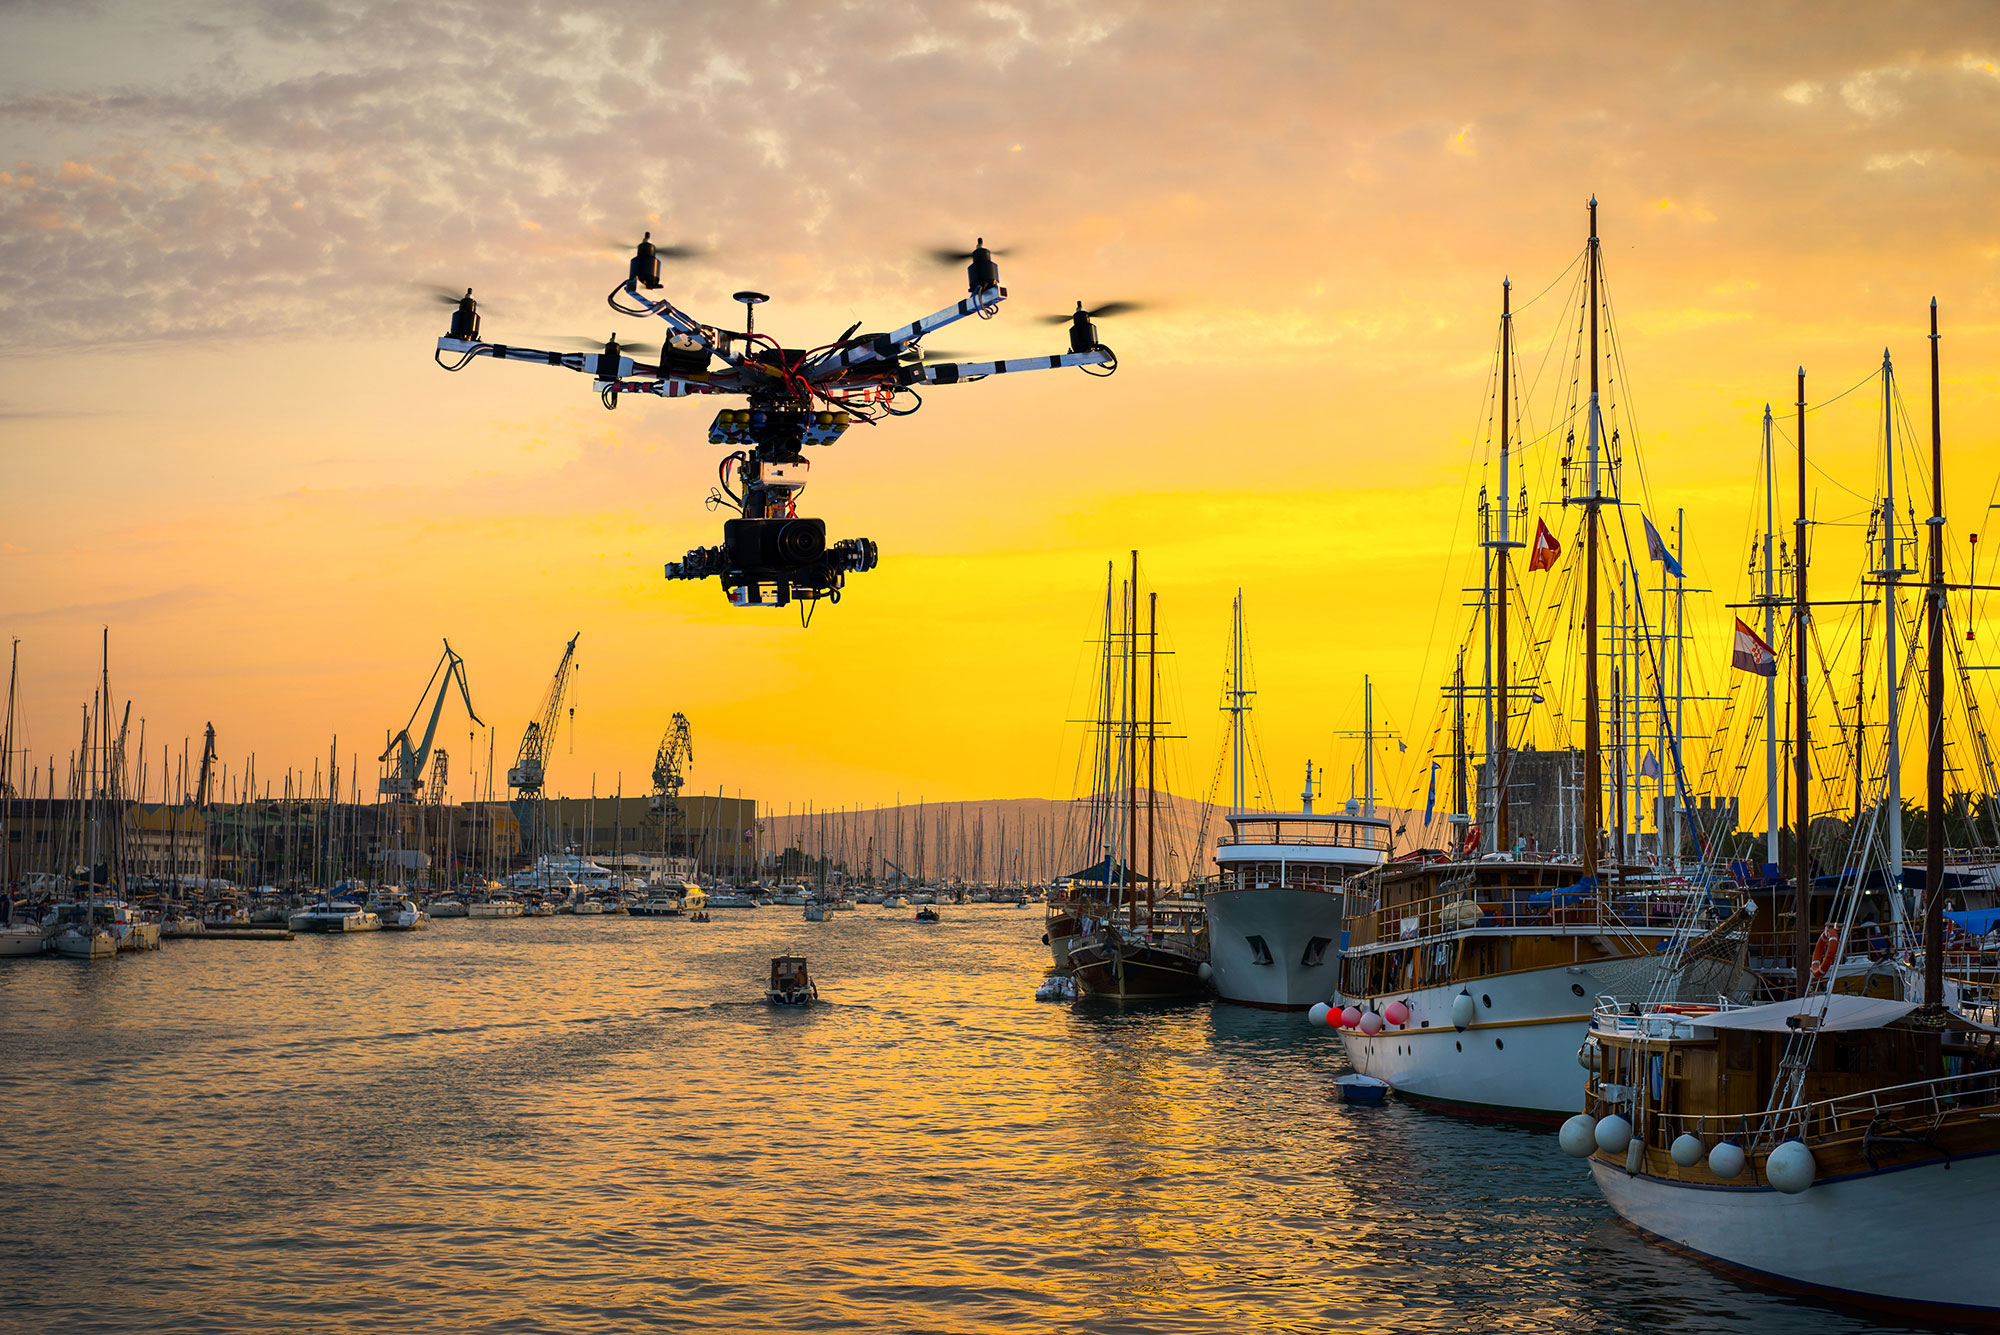 DRONE DETECTION - There is no doubt that drones can be a particular problem in the superyacht industry. MarineGuard has drone detection solutions to maintain privacy and security.